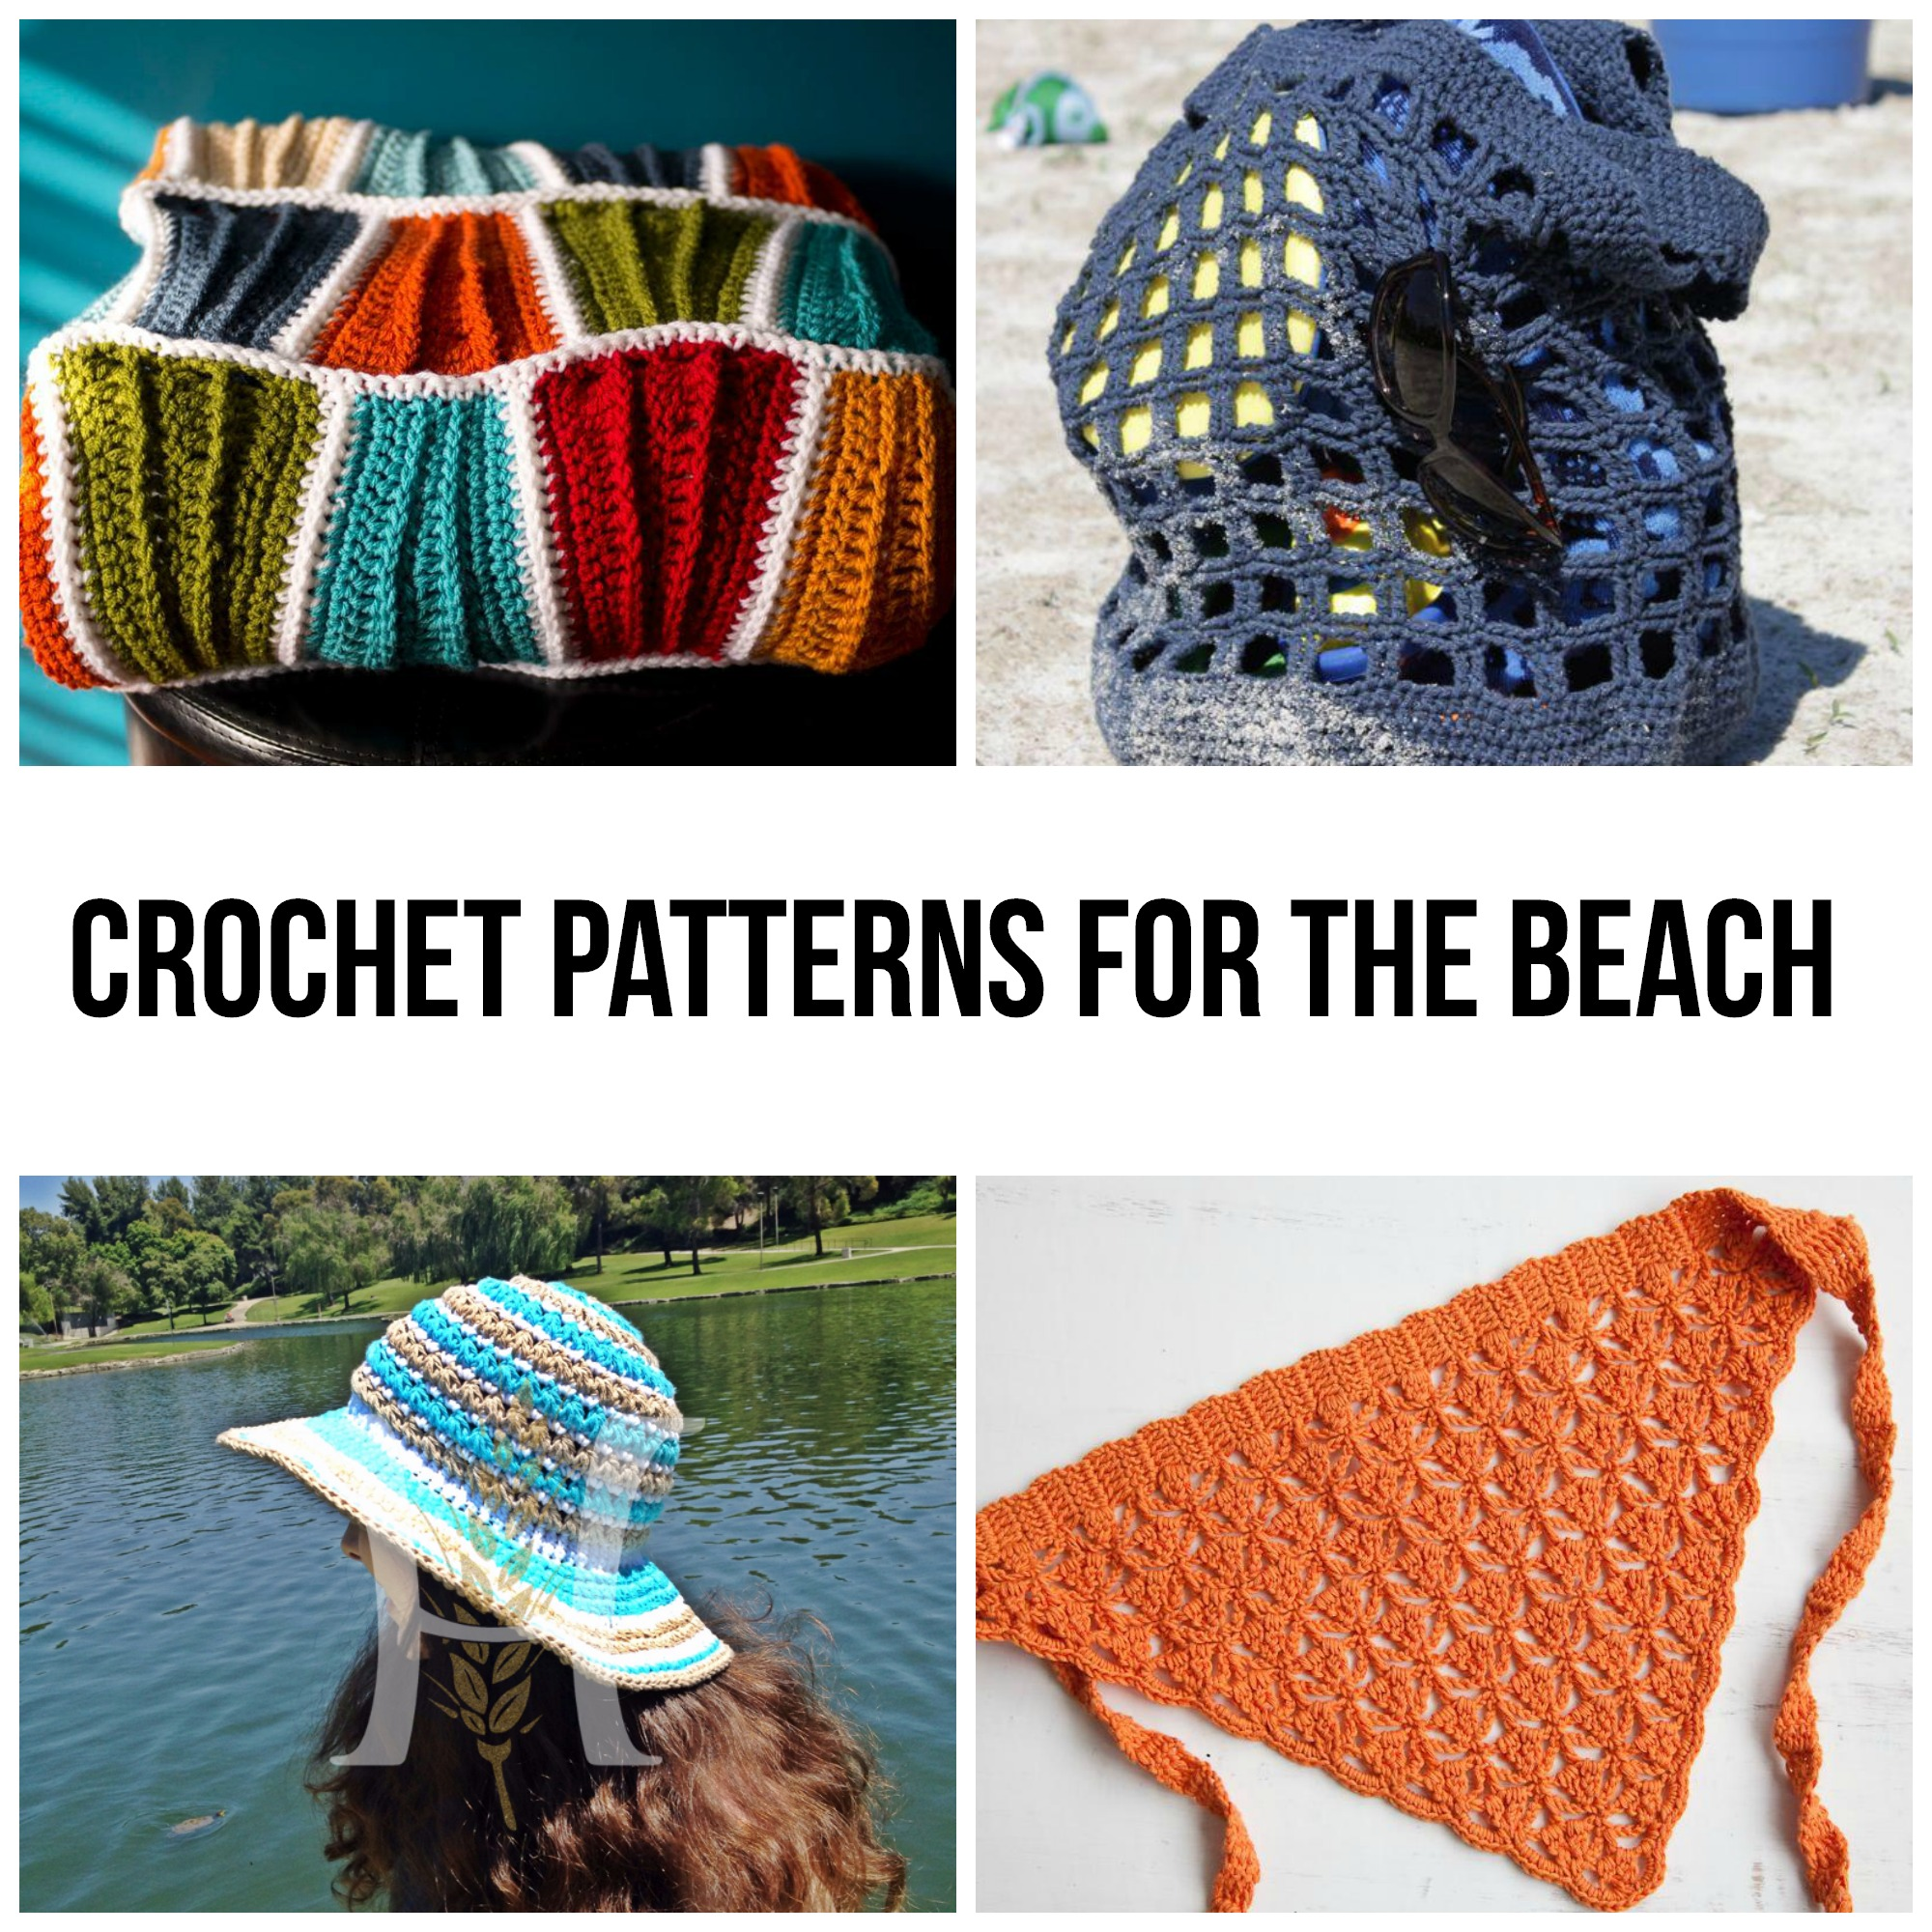 Crochet Patterns for the Beach